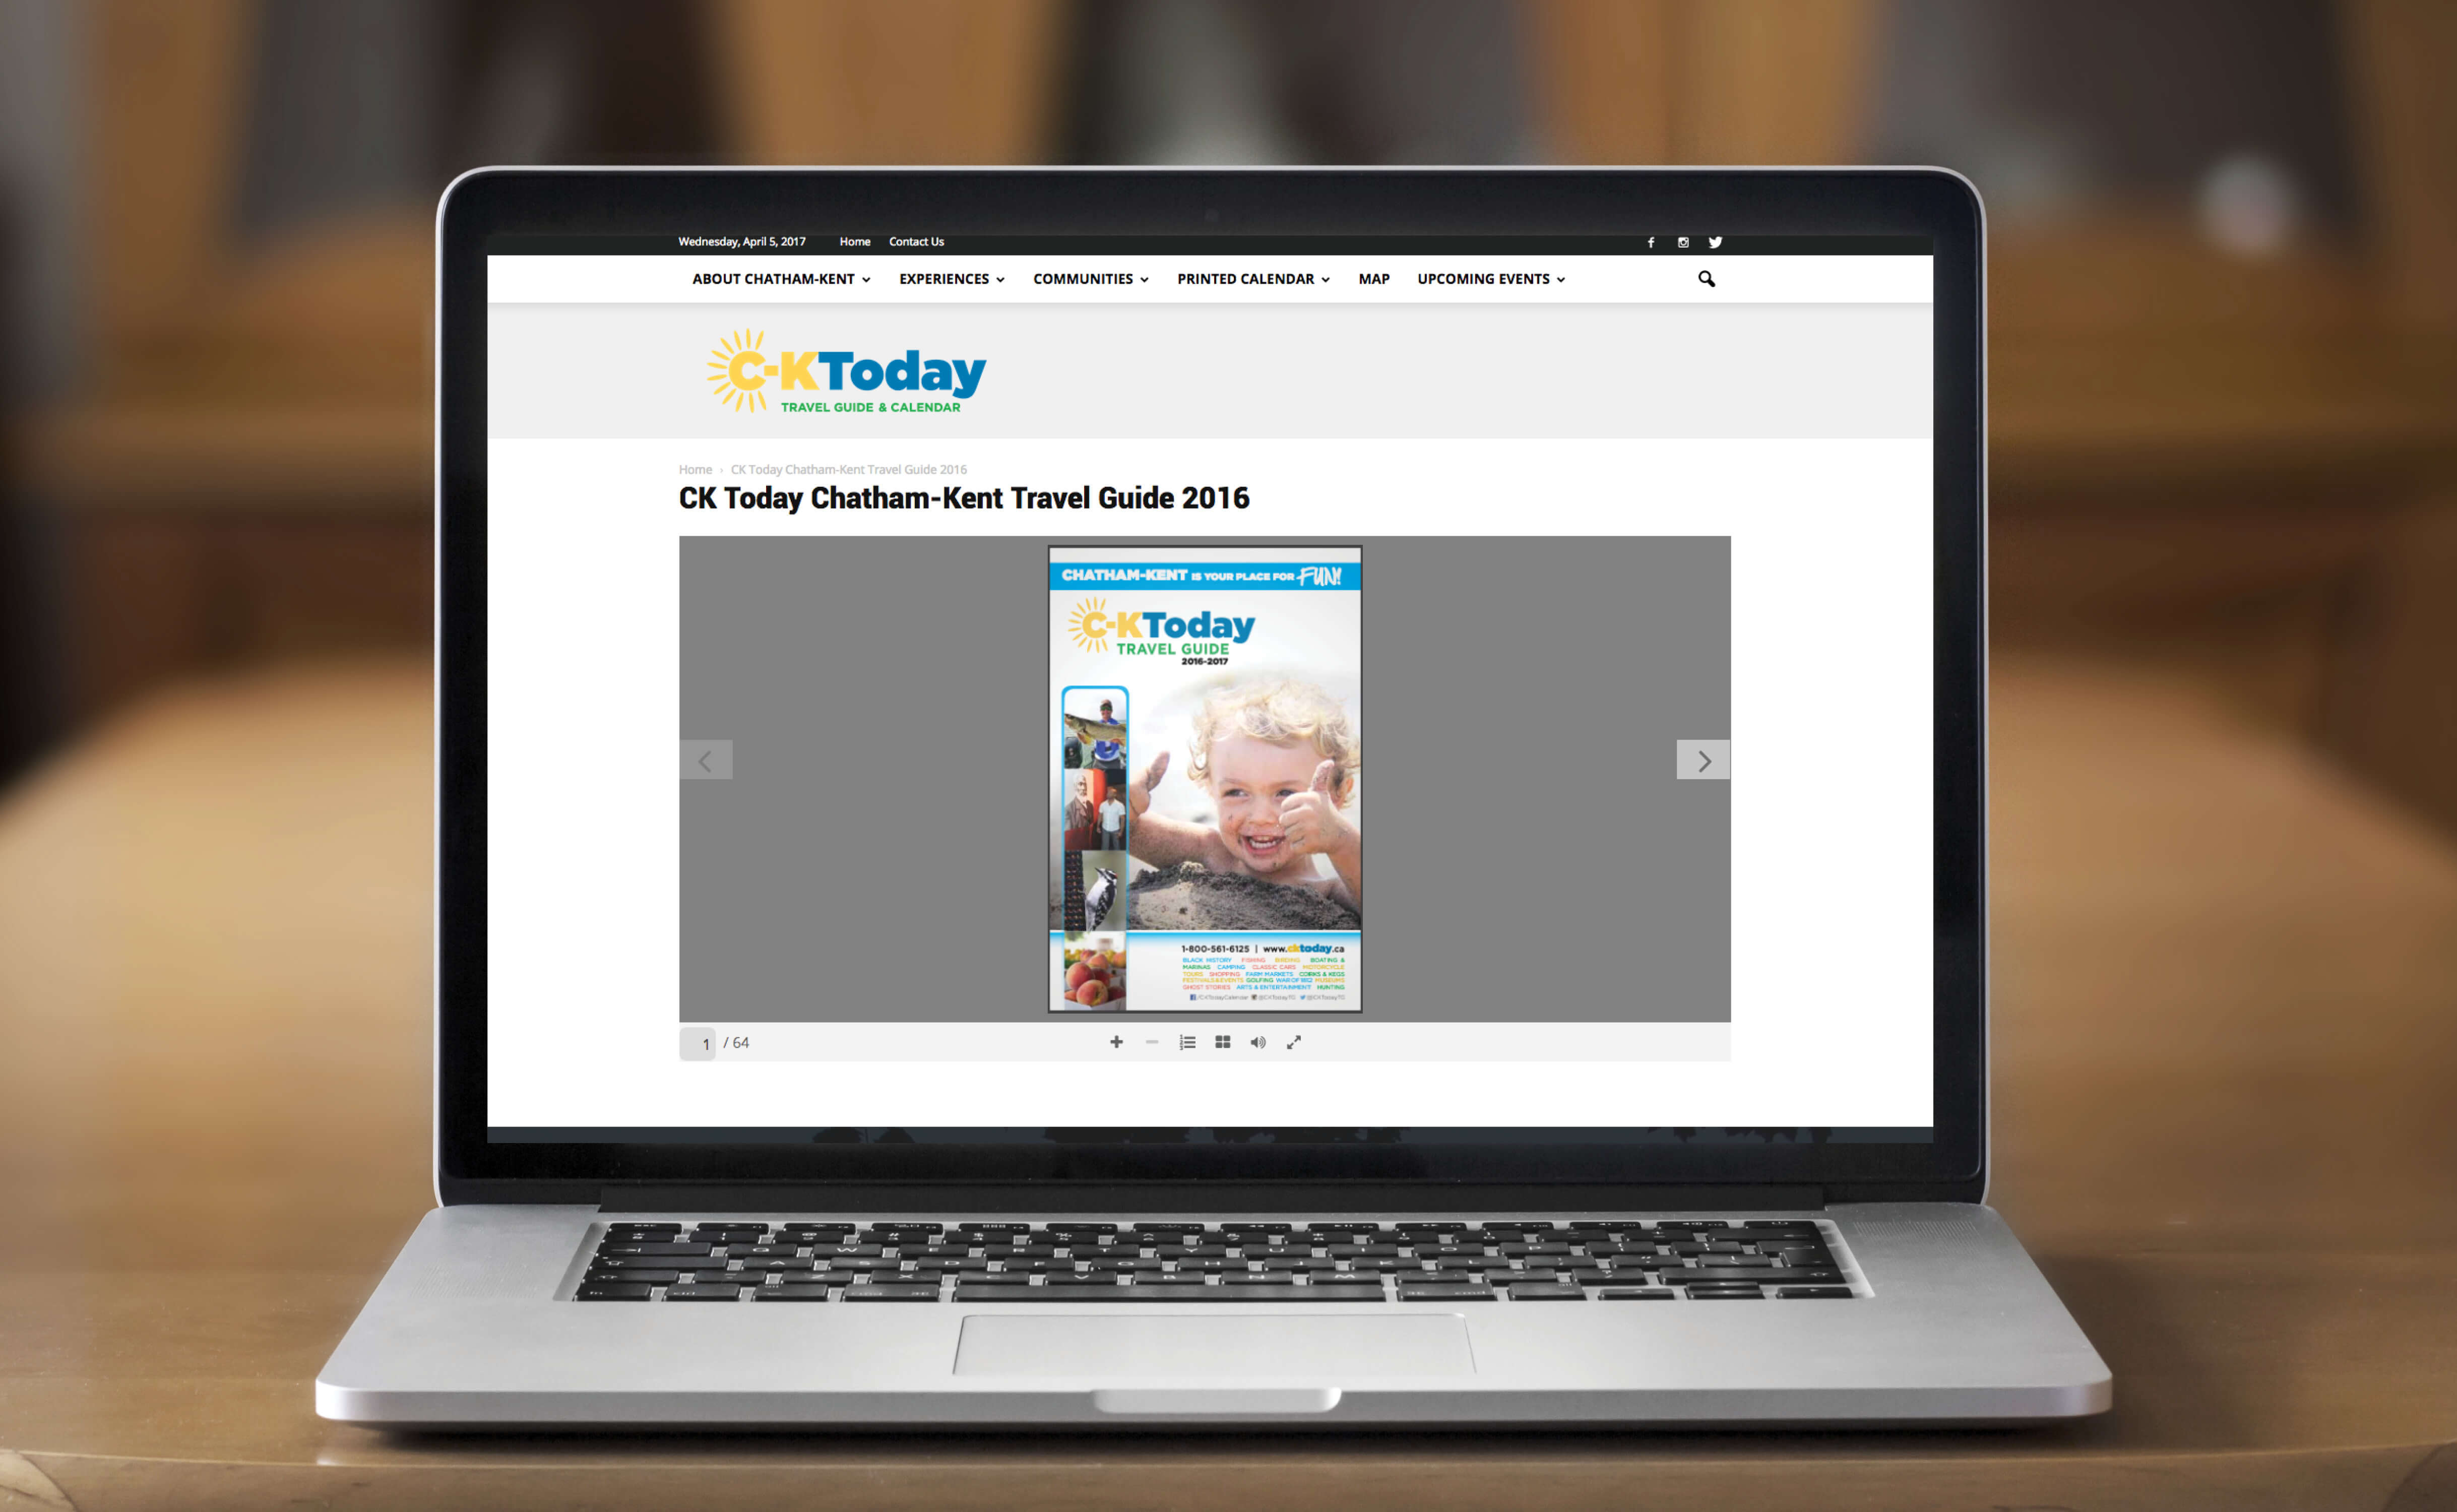 Ck Today Travel Guide website